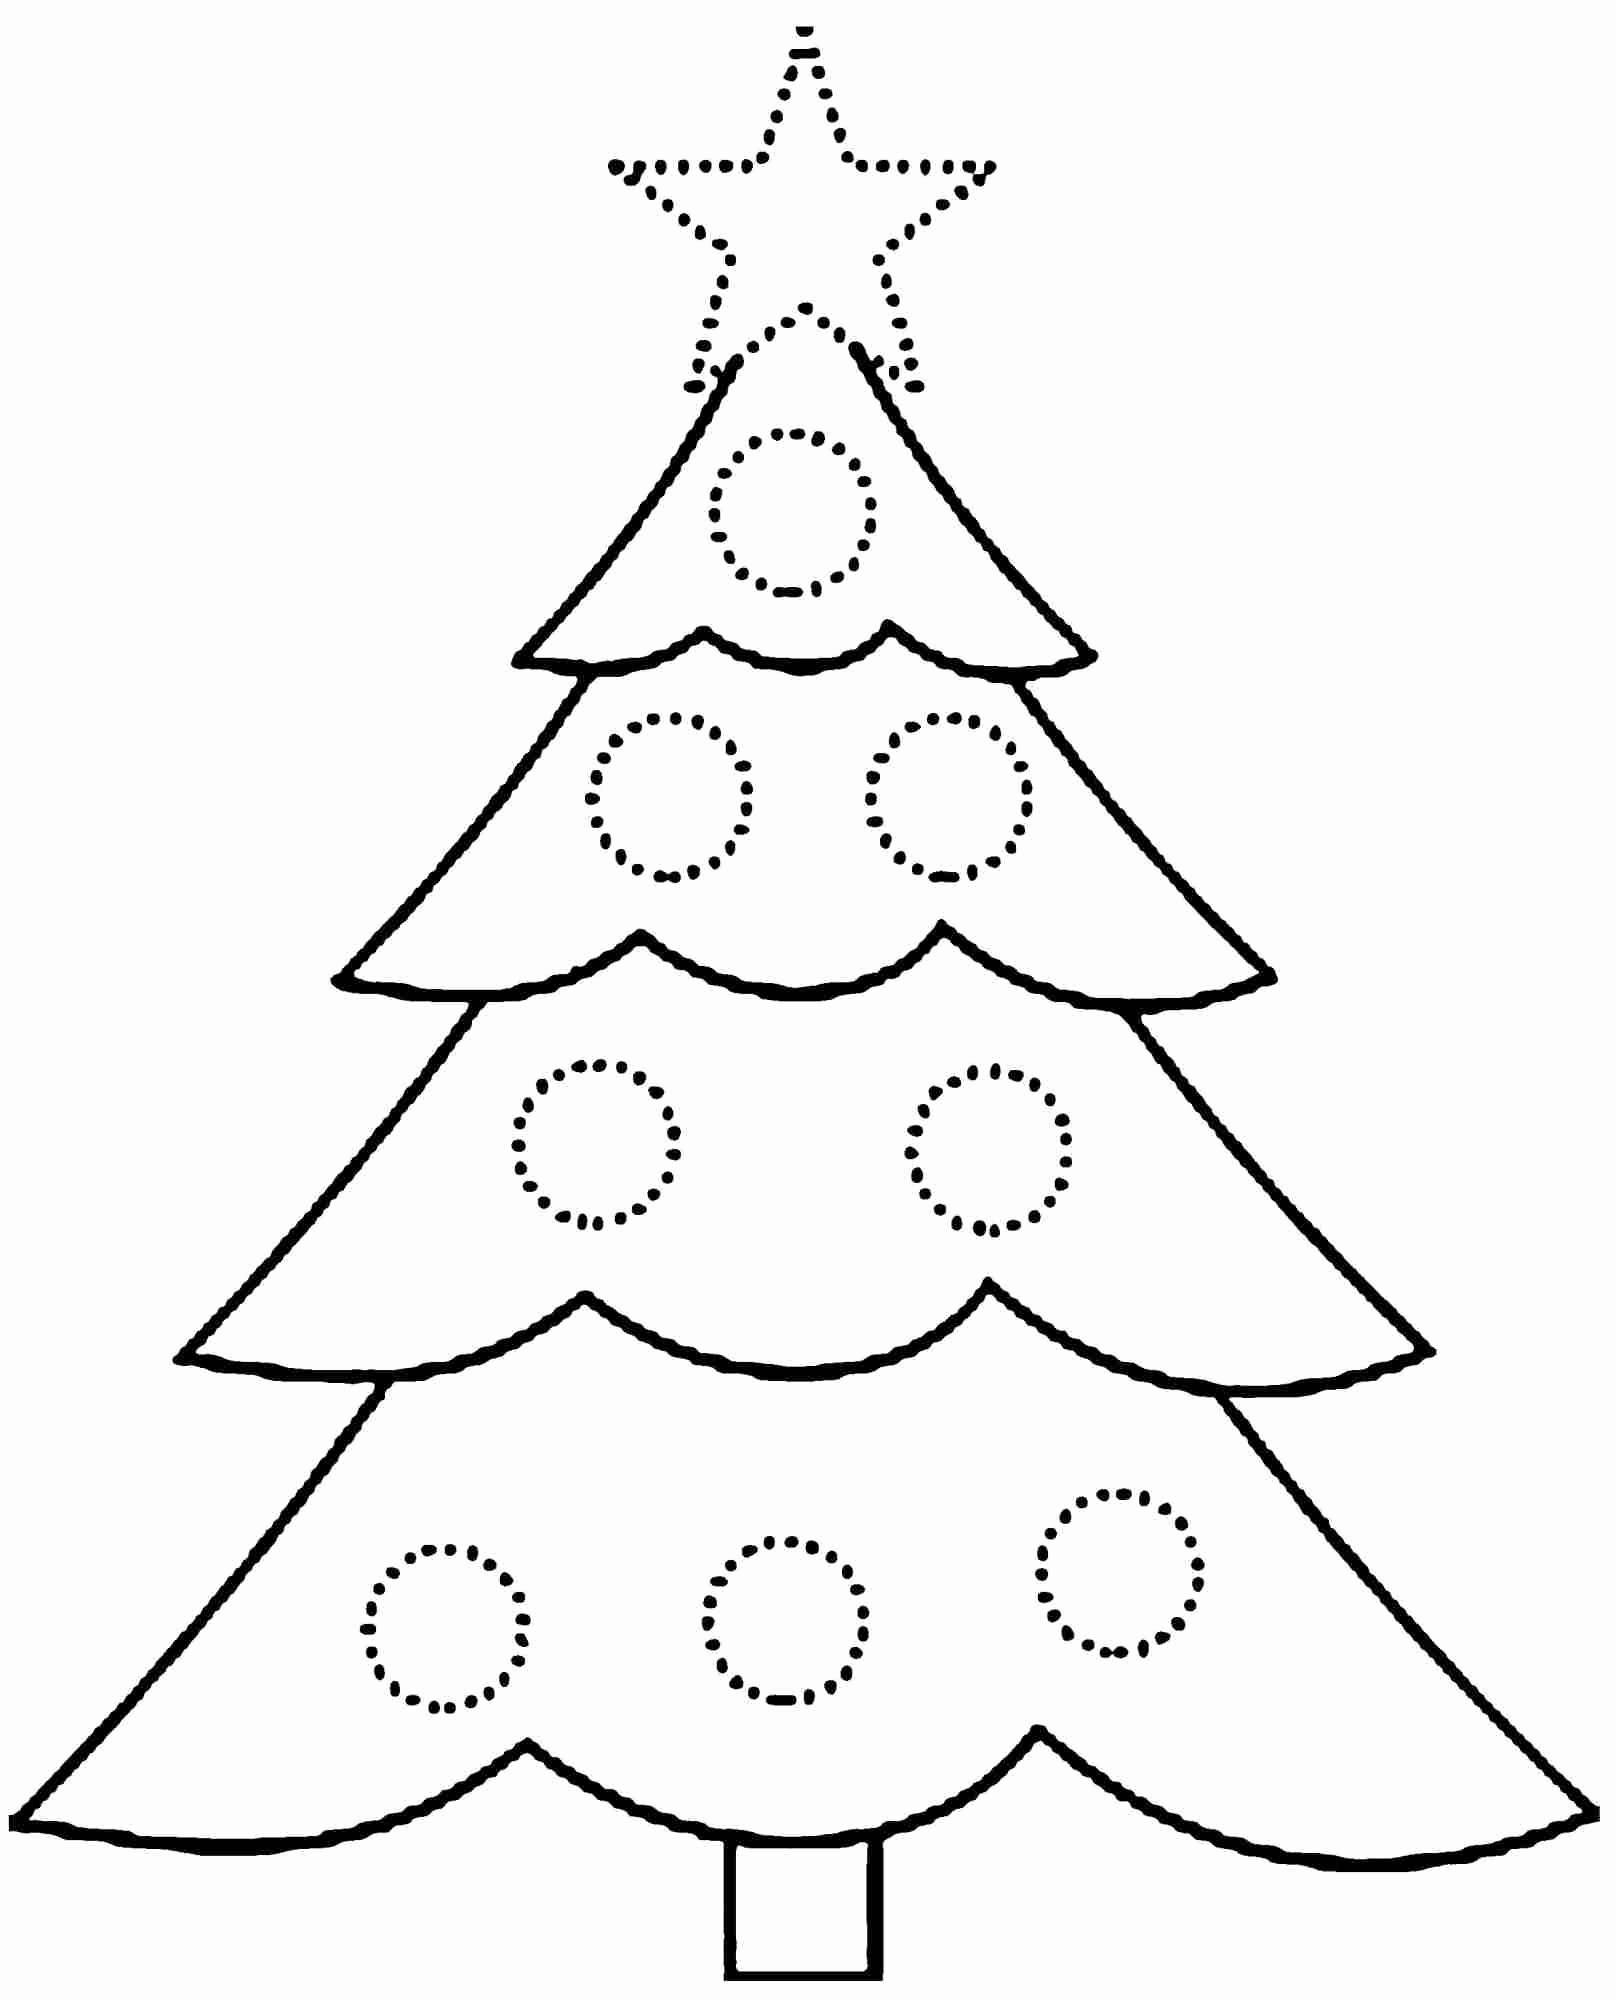 Coloring Pages Christmas Holly Best Free Printable Christmas Tree - Free Printable Christmas Tree Images